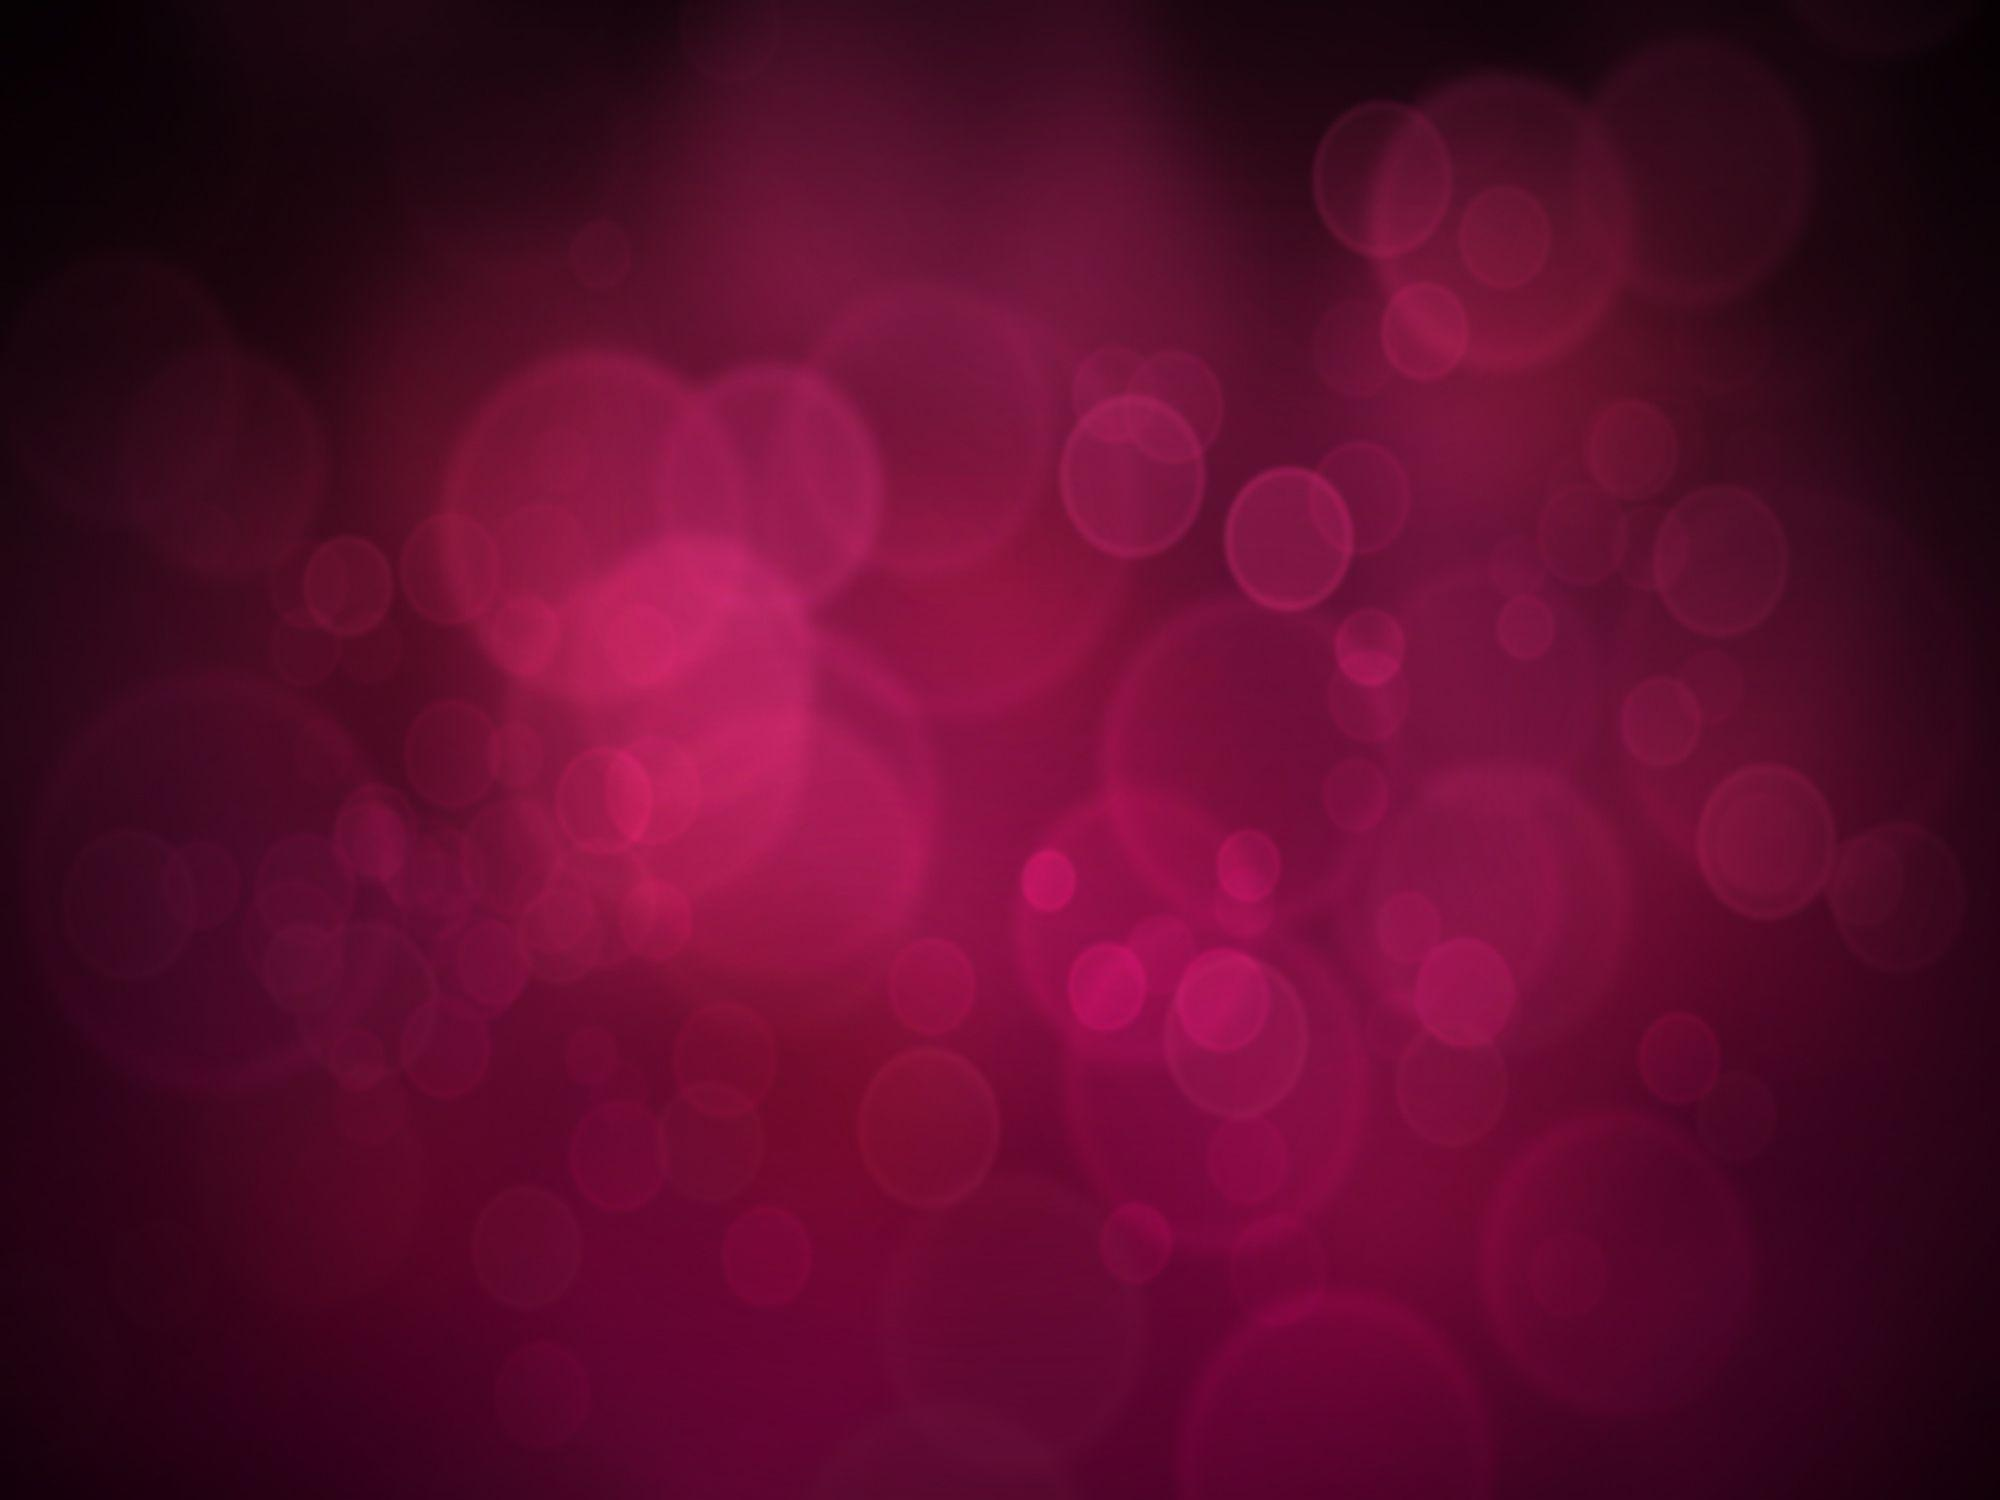 Pink And Black Backgrounds Wallpaper Cave All Wallpapers